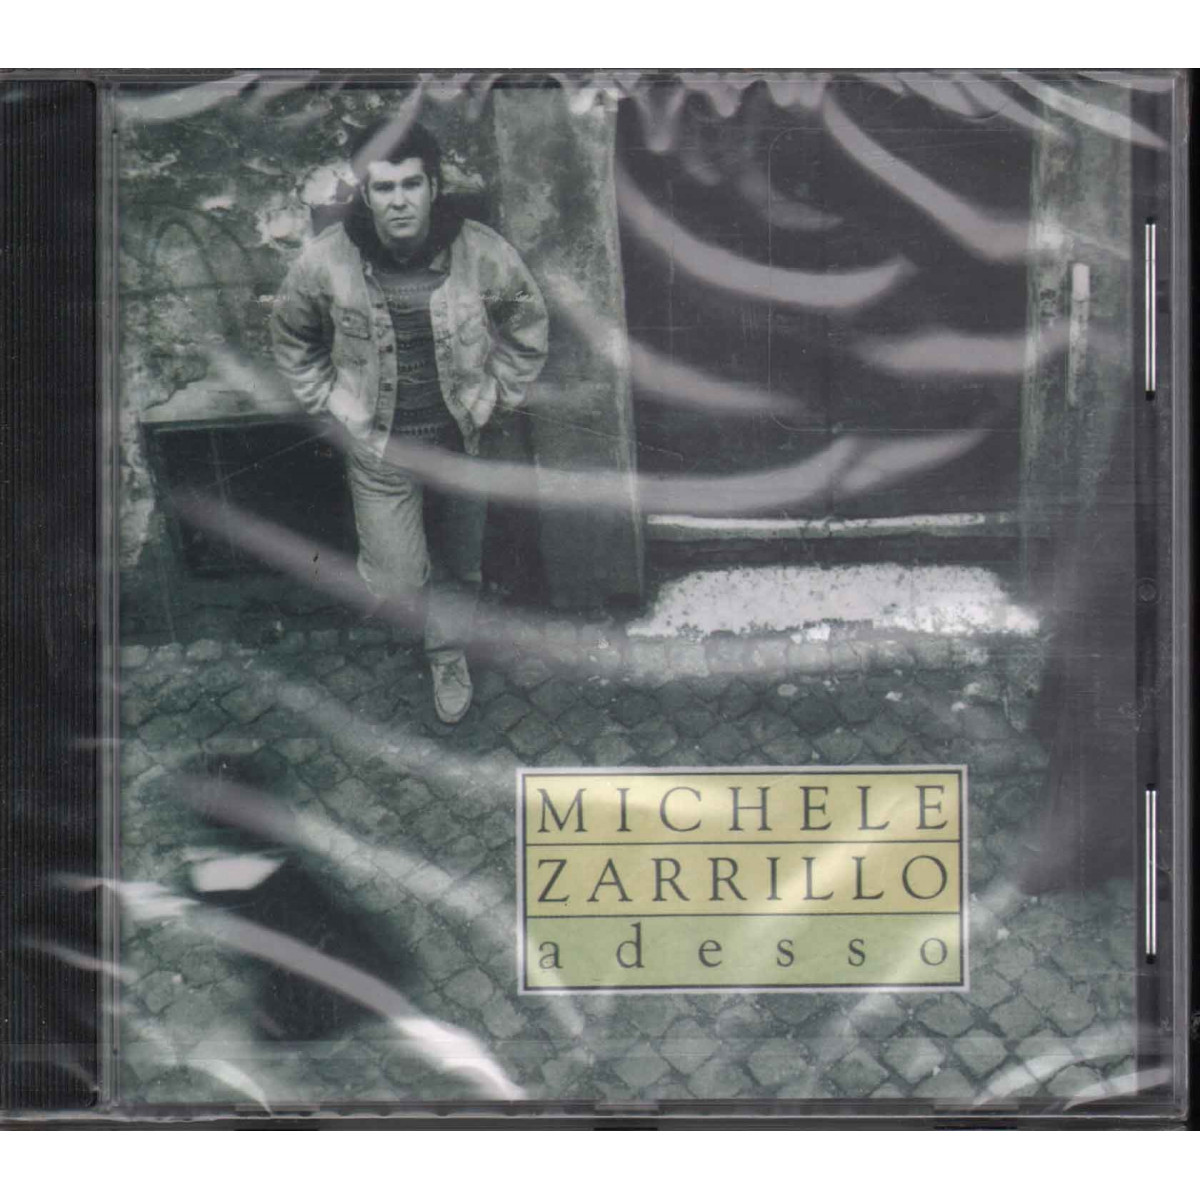 Michele Zarrillo CD Adesso / Sony S4 5099749717220